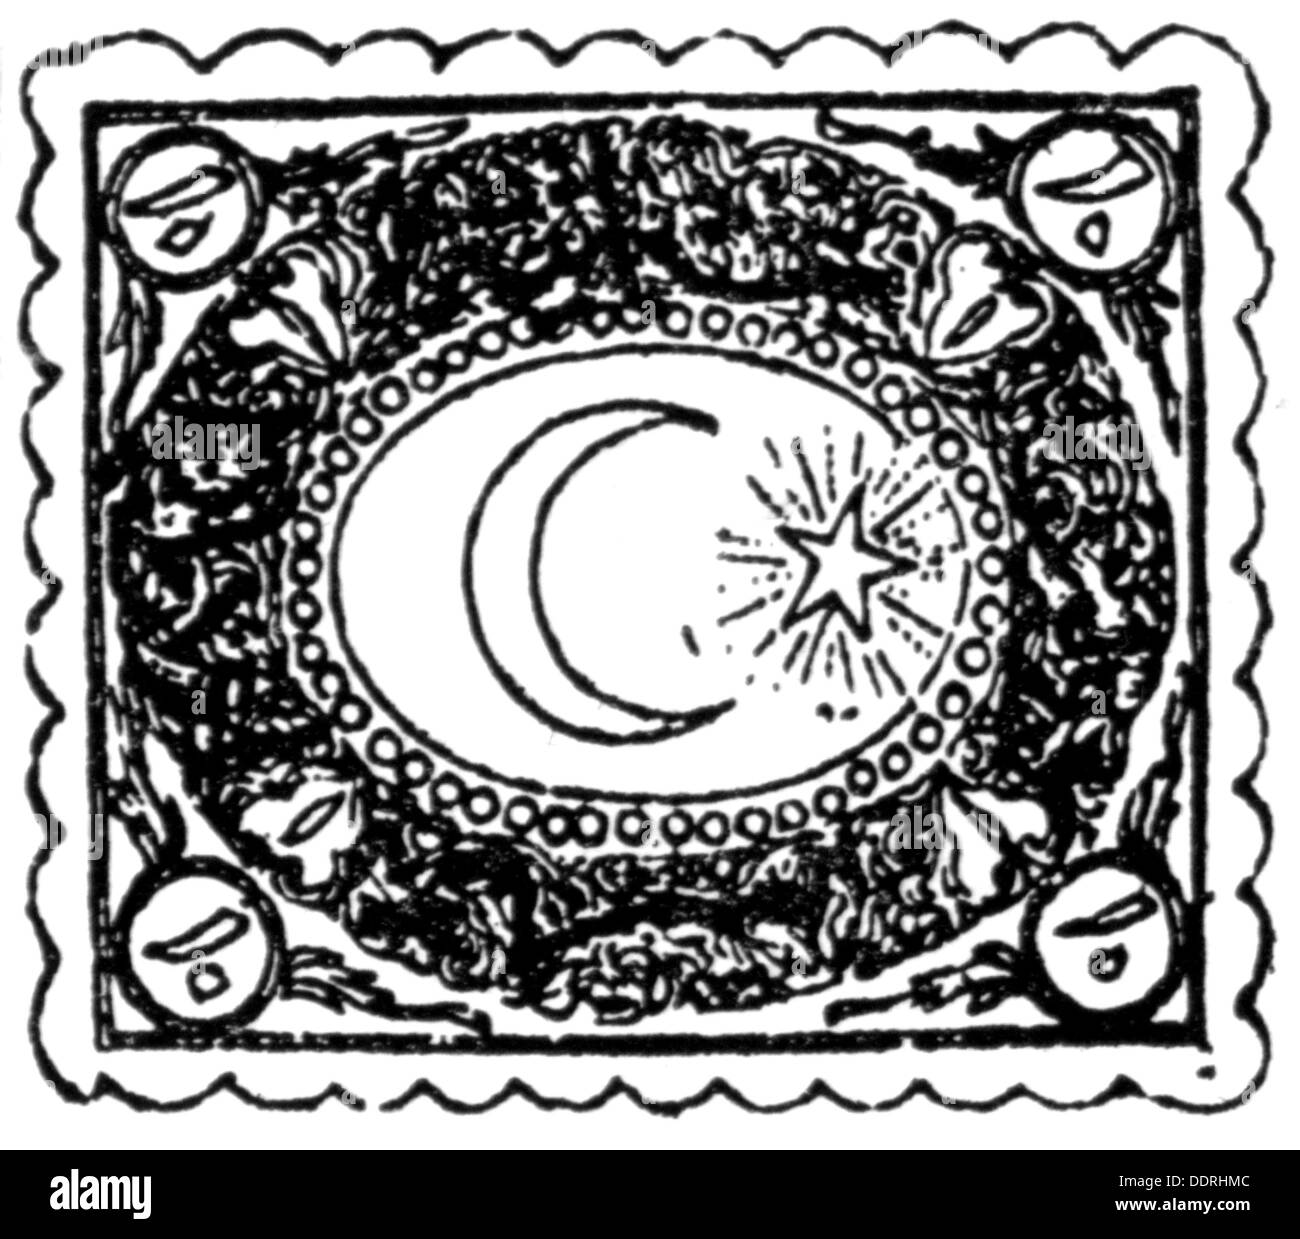 mail post postage stamps turkey stamp with star and crescent